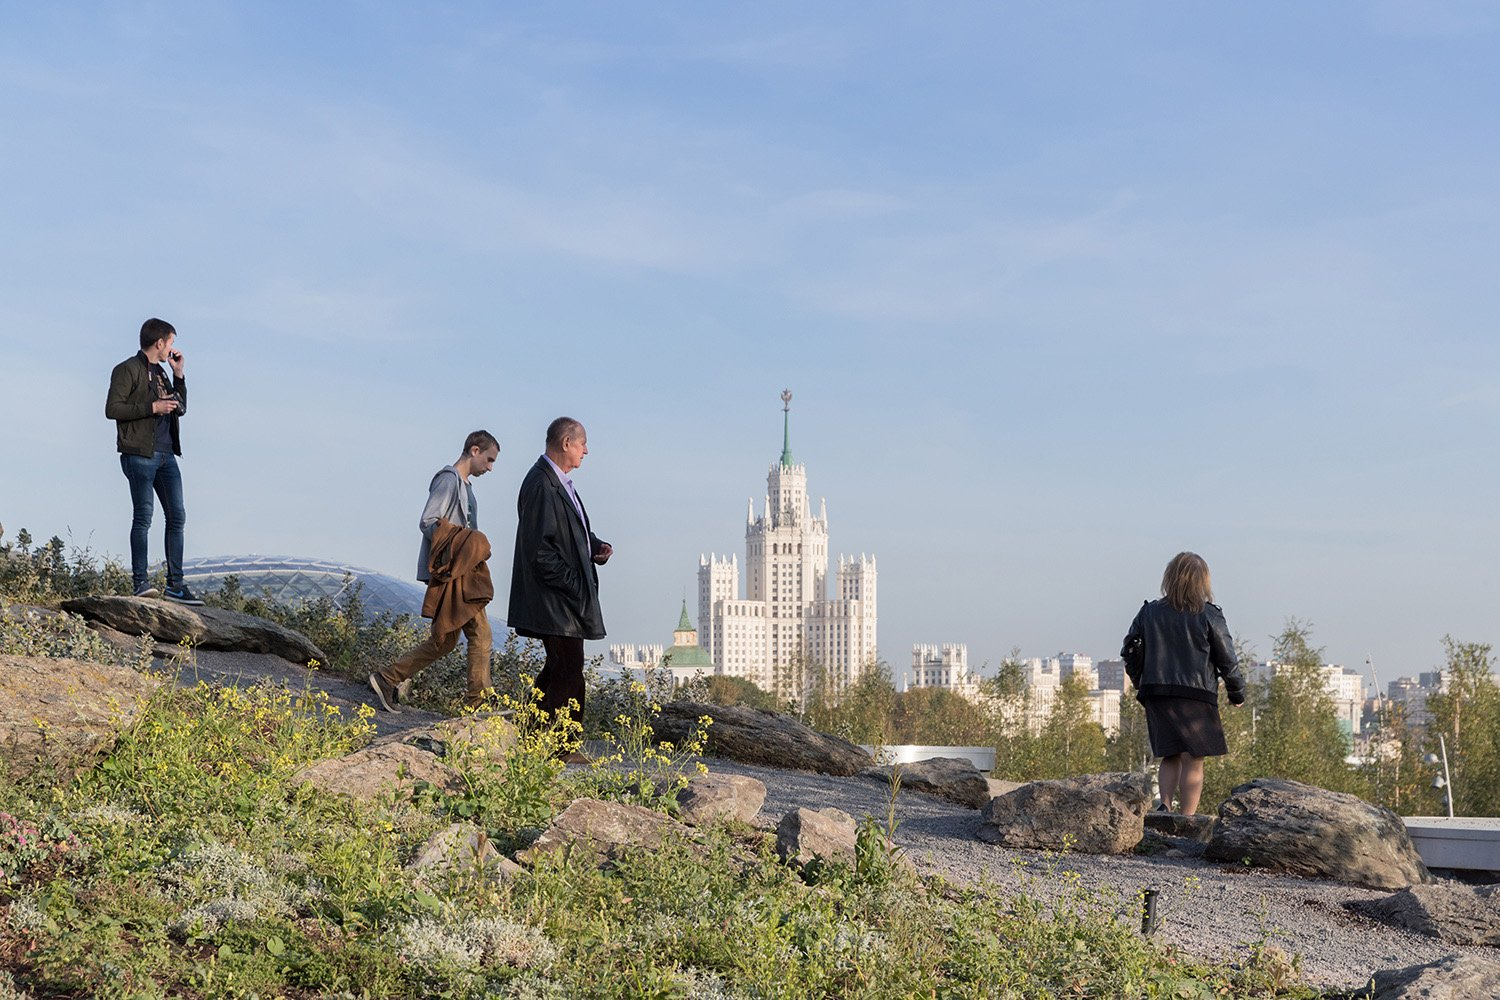 Steppe Landscape Zone: View of Stalin-Era Skyscaper and Glass Crust, Zaryadye Park Photography by Iwan Baan